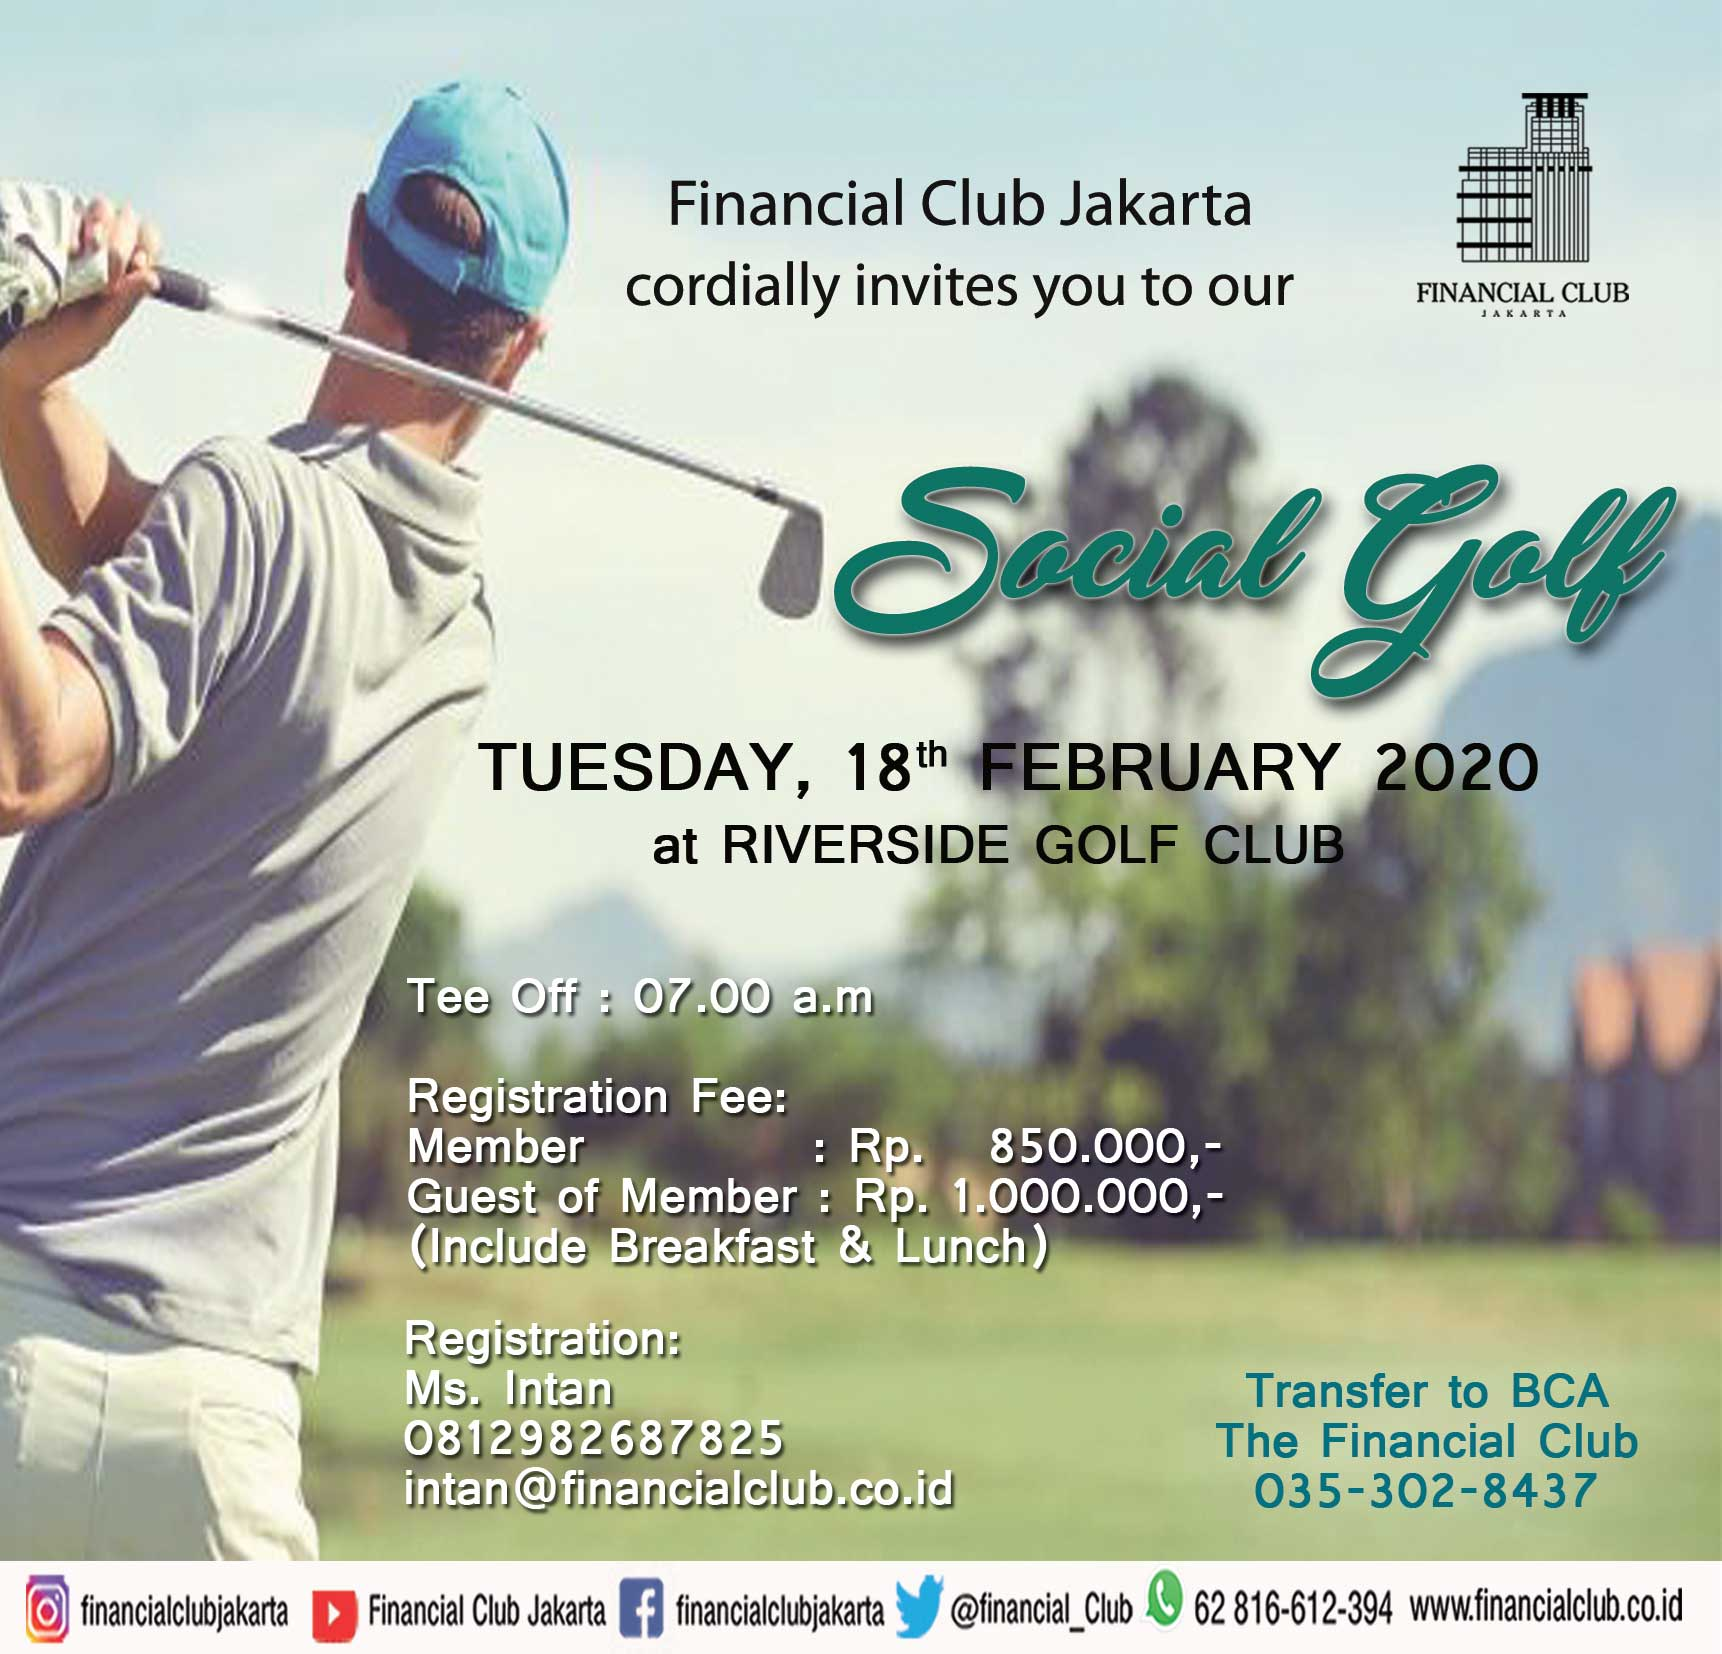 Social Golf at Riverside Golf Club, Tuesday 18th February 2020